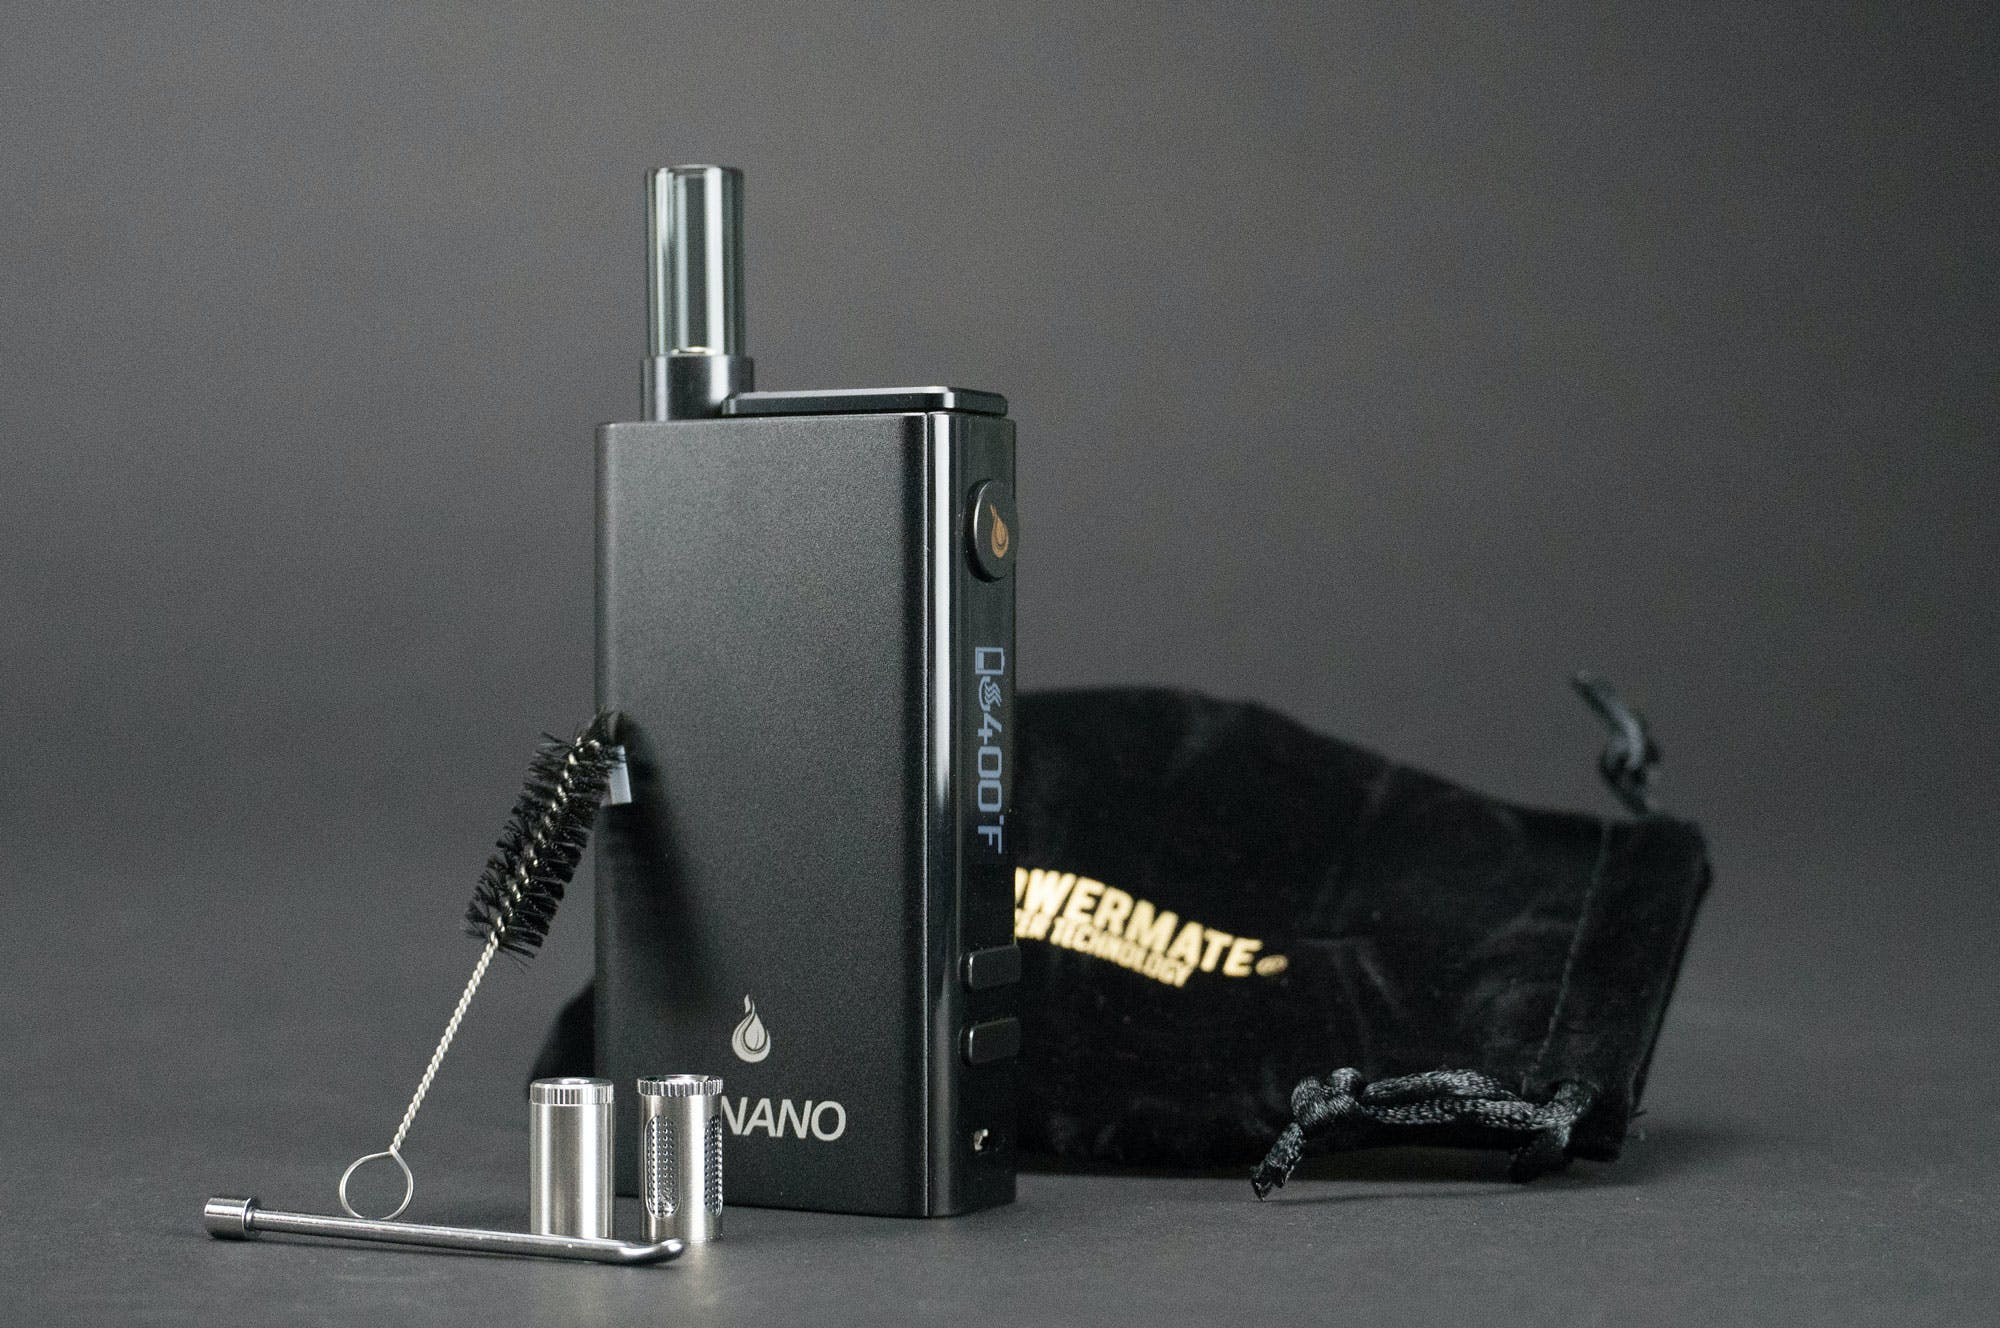 The Must Have Vaporizer for Concert Season Has Arrived California Considers Licensing Its Own Banks For The Cannabis Industry